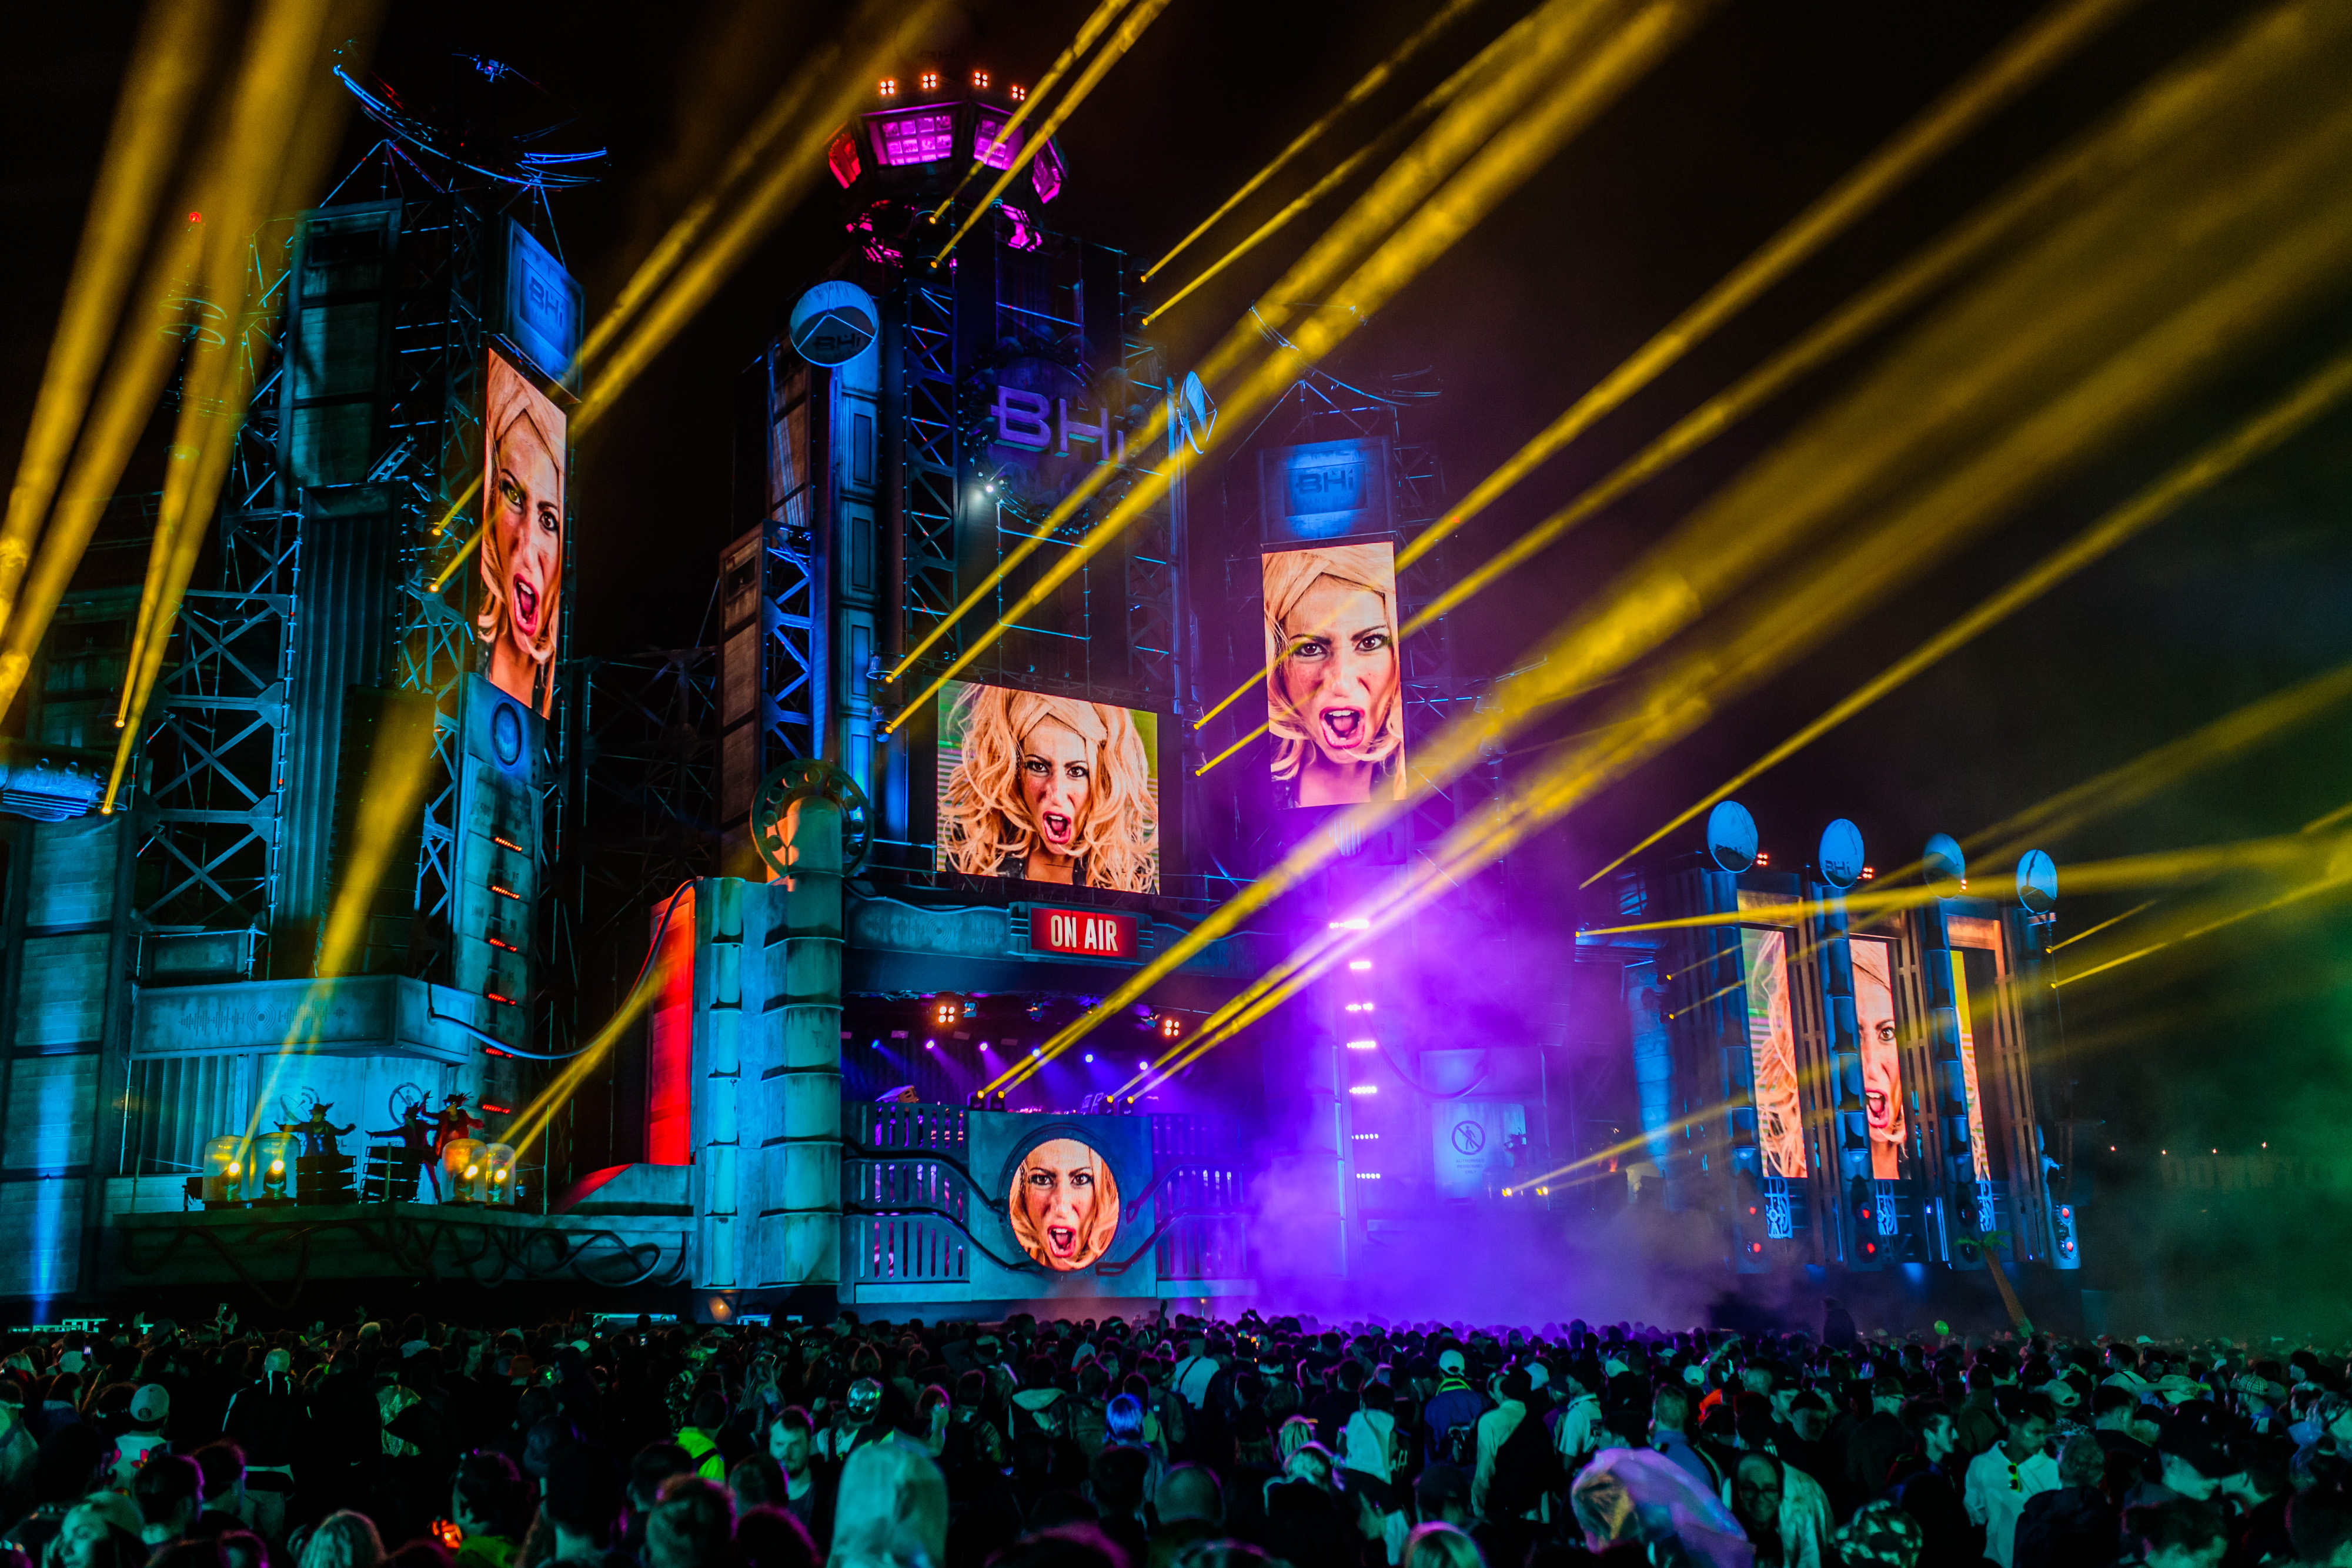 New for BoomTown 2018 - The Metroplis stage